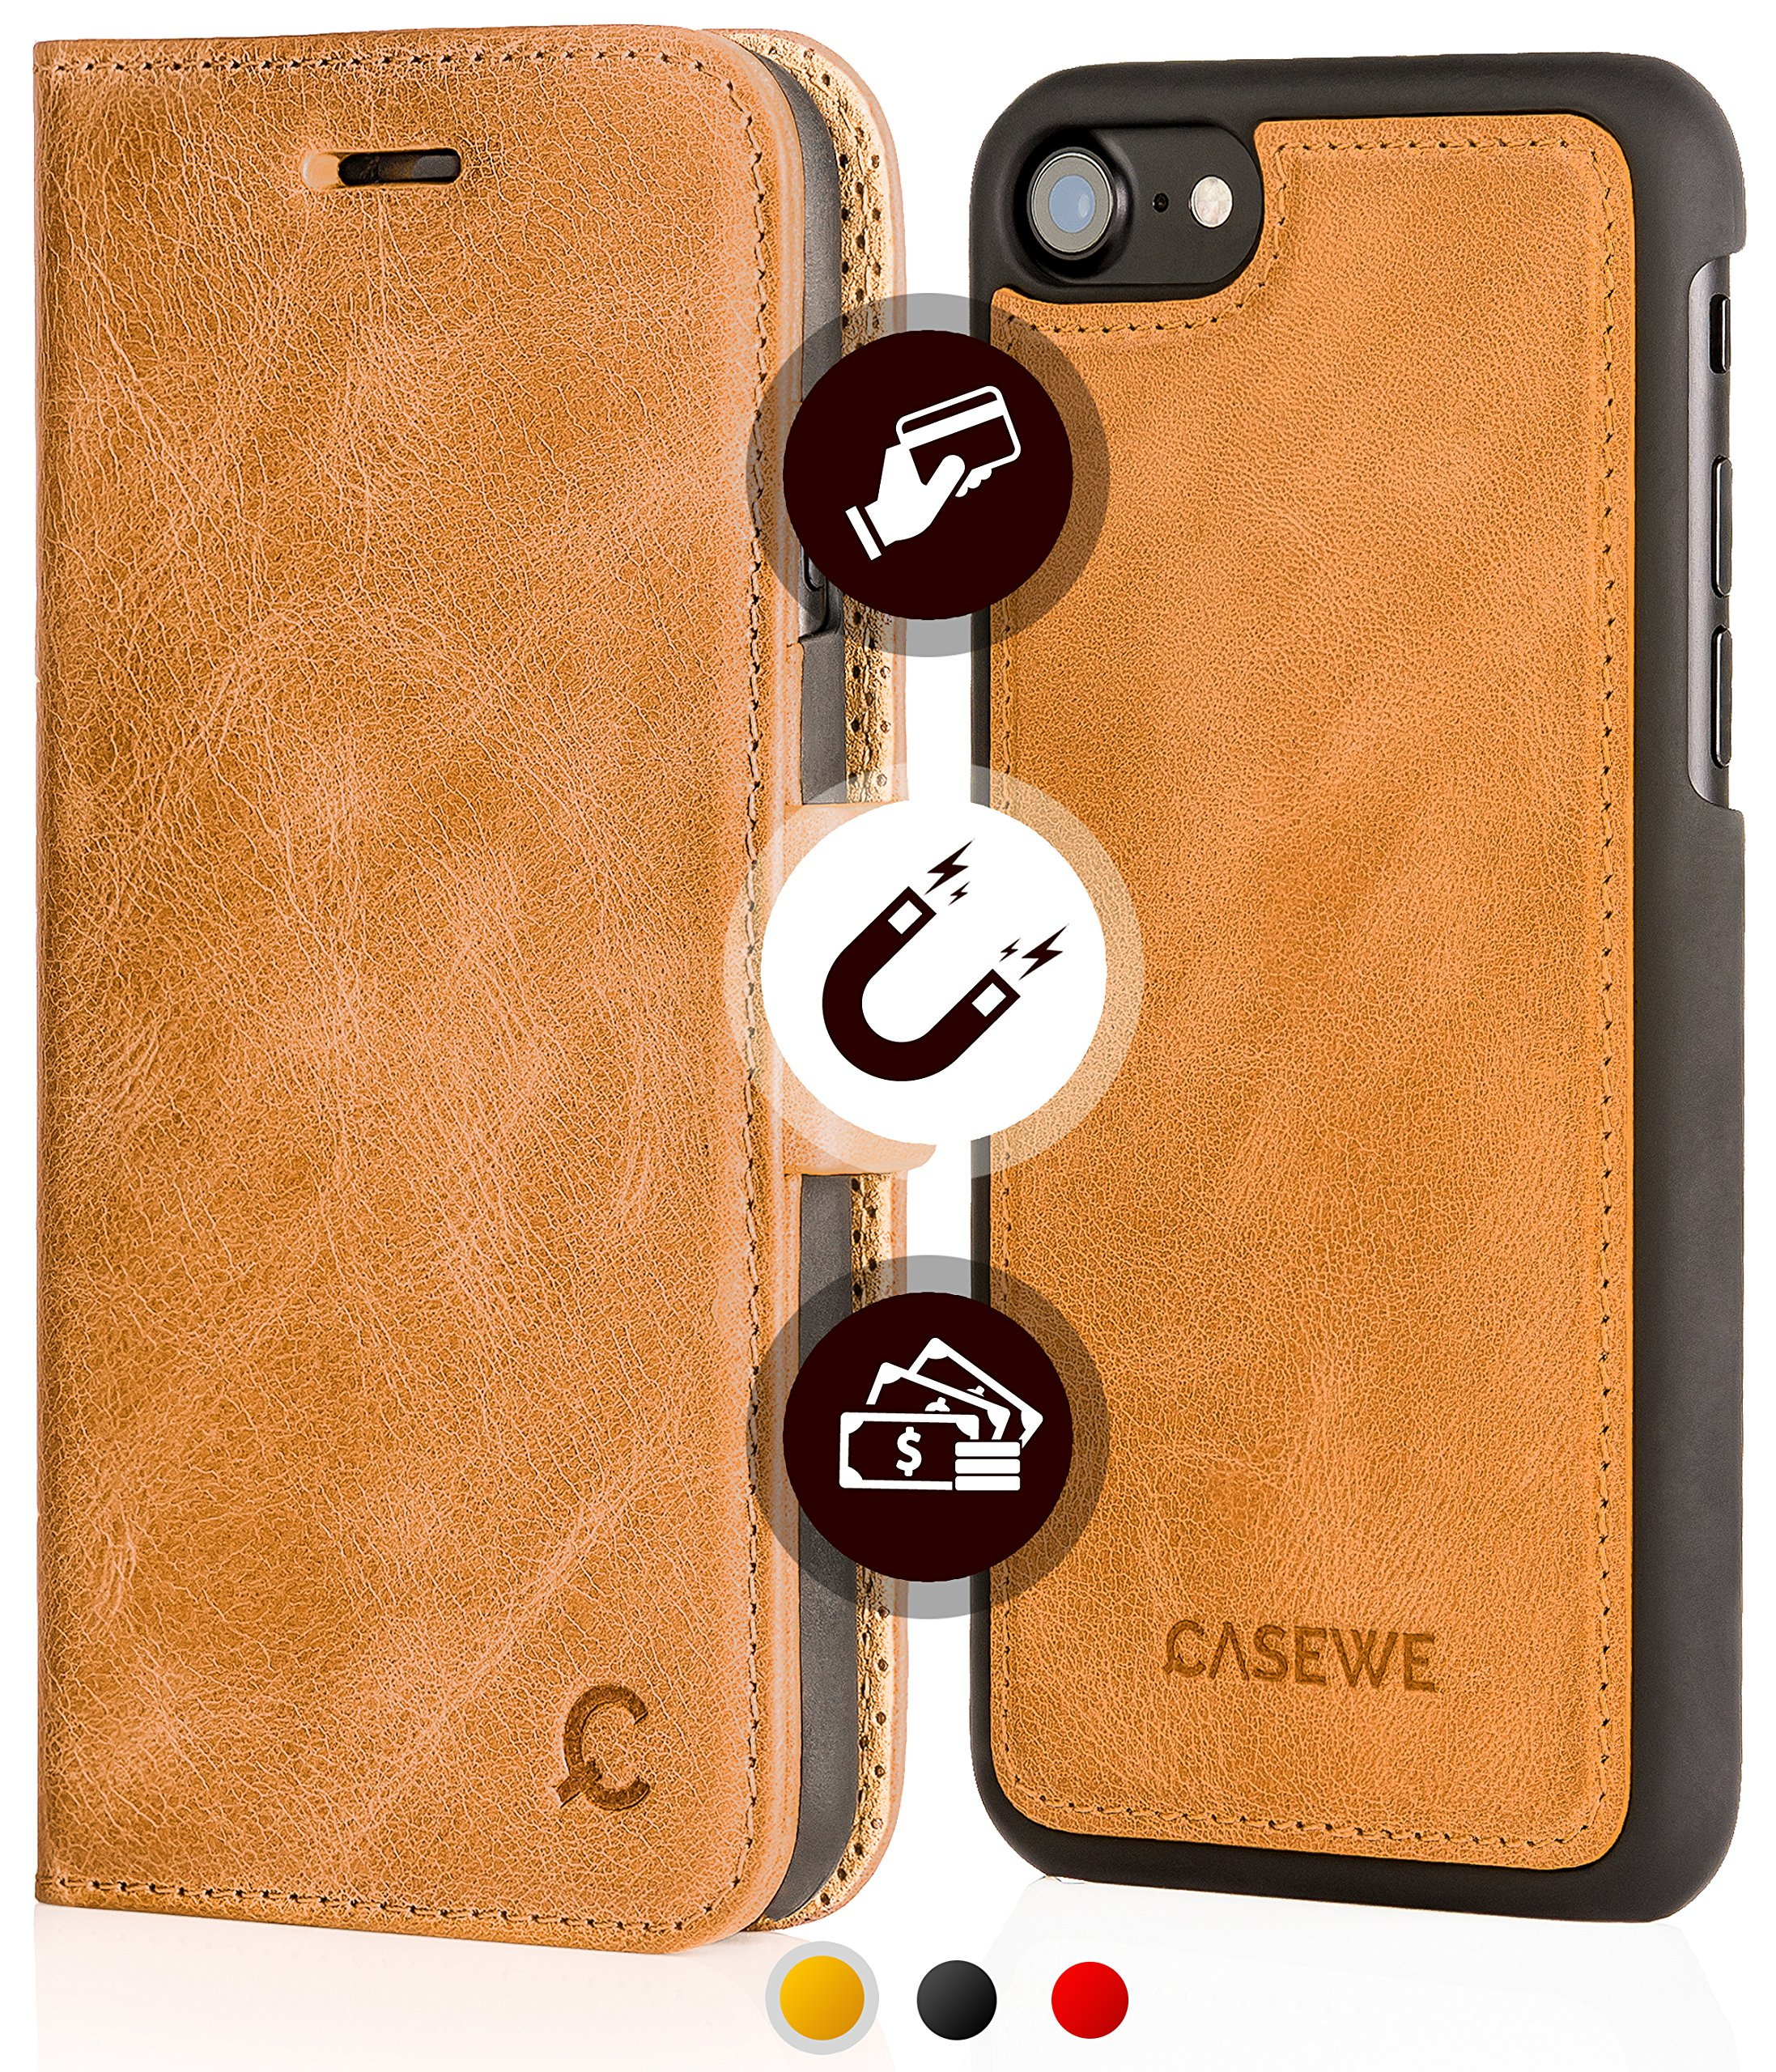 iPhone 8 / iPhone 7 Leather Wallet Case - Folio Book in Italian Style, Genuine Flip Case, 3 Card Holder and Cash with Kickstand Function - Magnetic Clip Closure & Detachable Hard Cover - Cognac